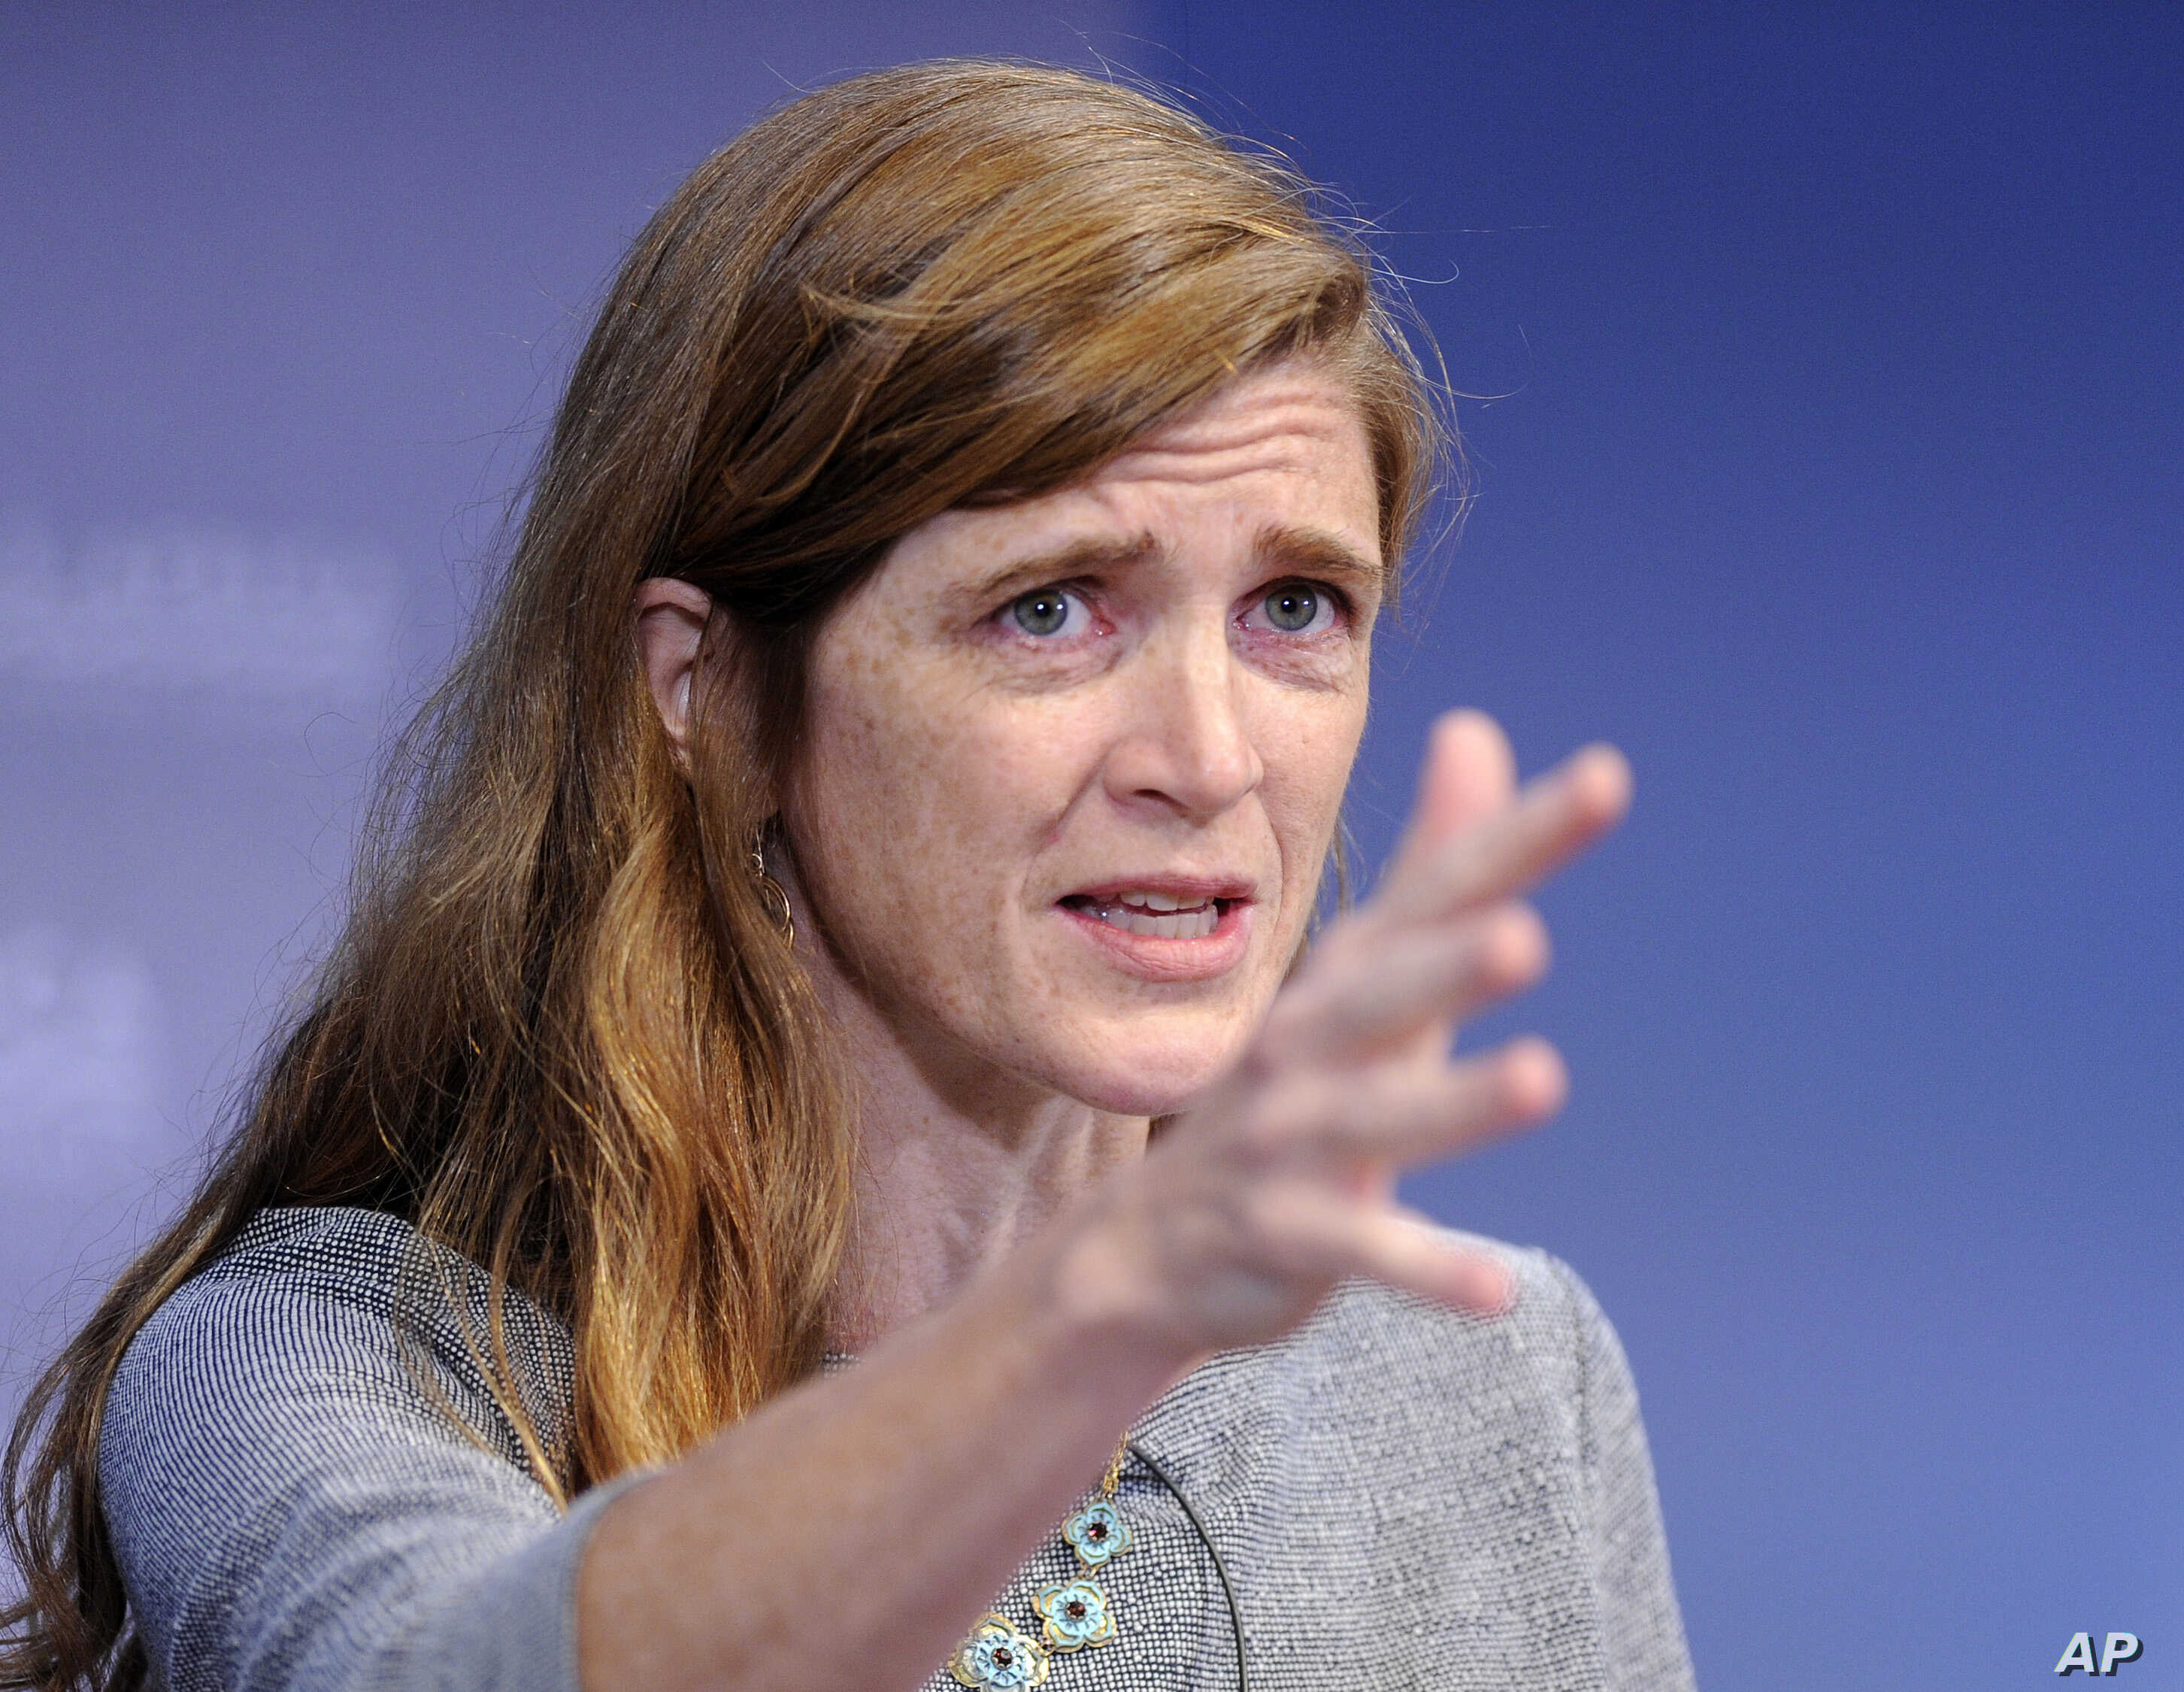 U.S. Ambassador to the U.N. Samantha Power speaks during the Civil Society Forum as part of the 2014 U.S. Africa Summit  in Washington, Aug. 4, 2014.